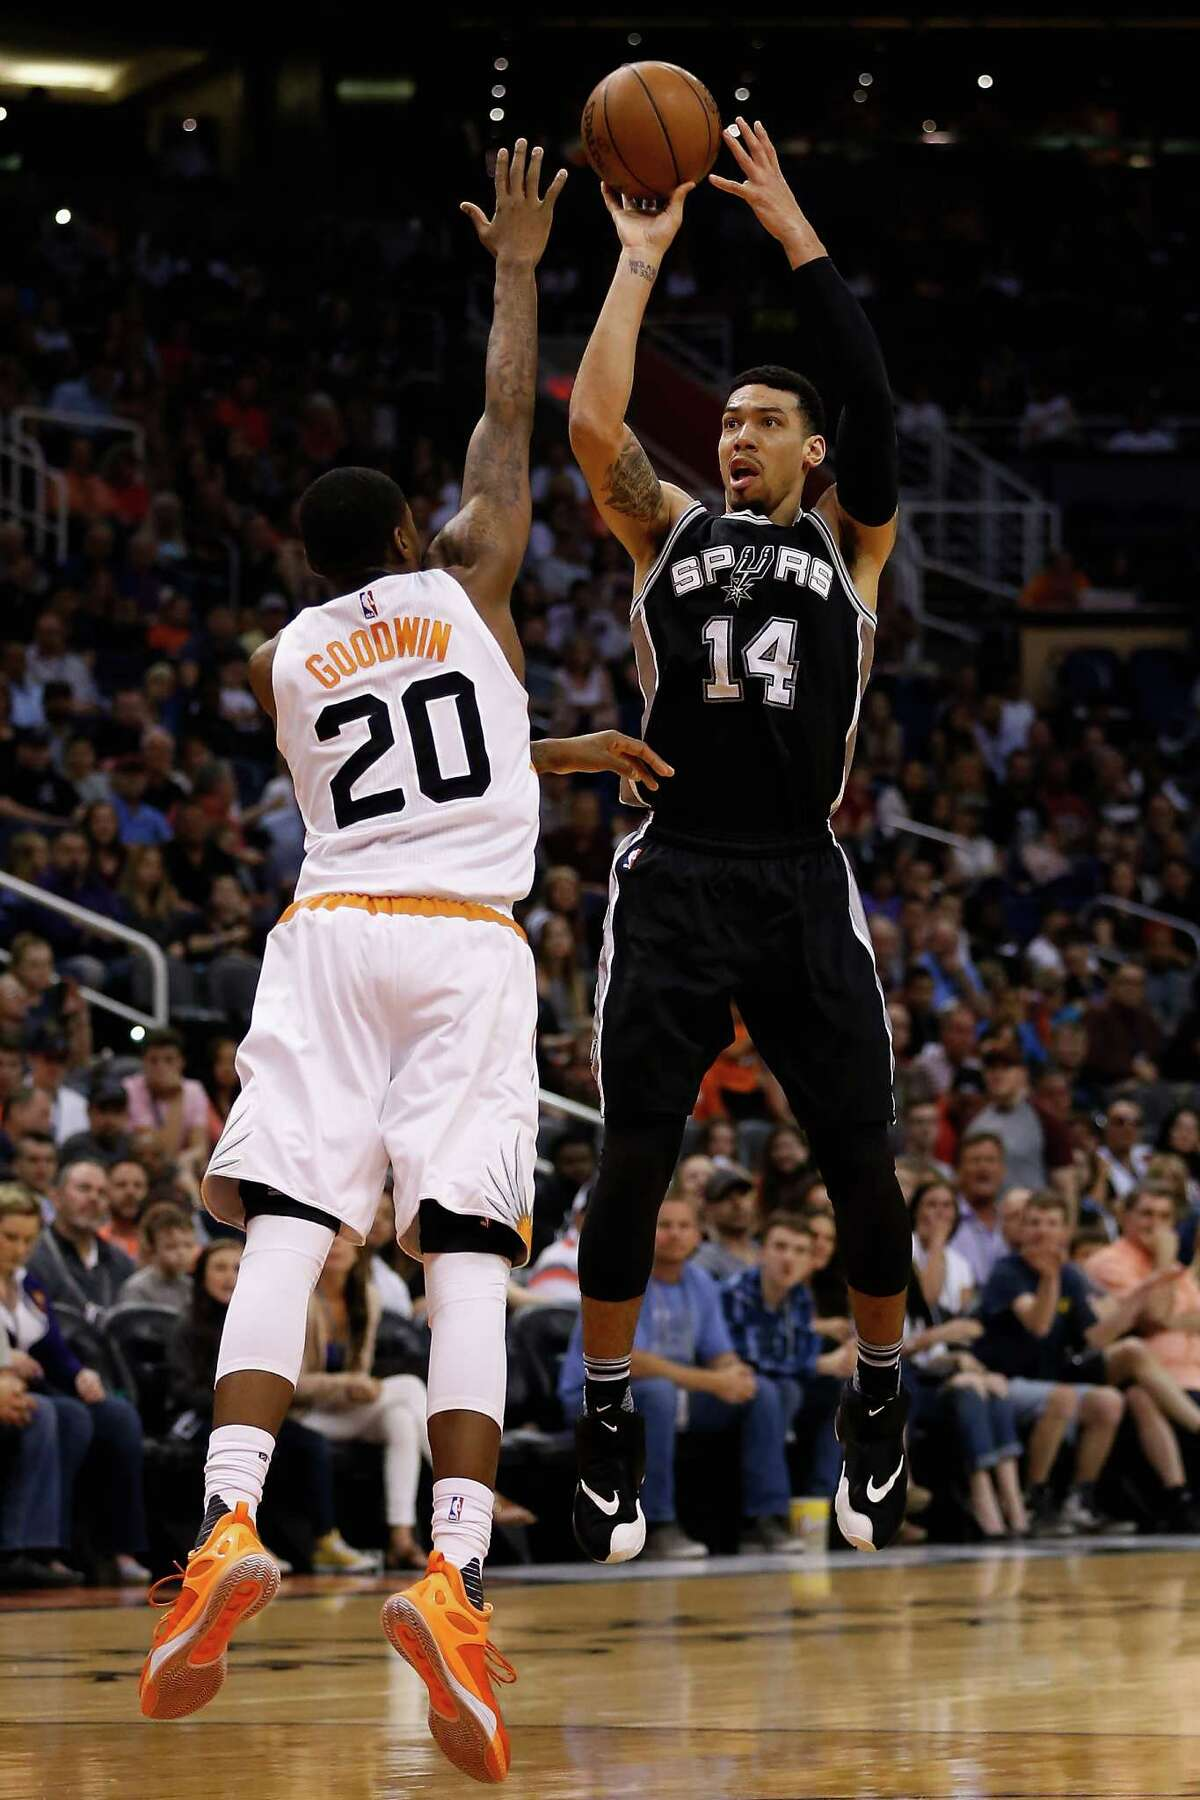 Oct. 3 at Phoenix, 9 p.m. The Spurs officially begin life without Tim Duncan on Oct. 3, when they travel to Phoenix for their preseason opener against the Suns.